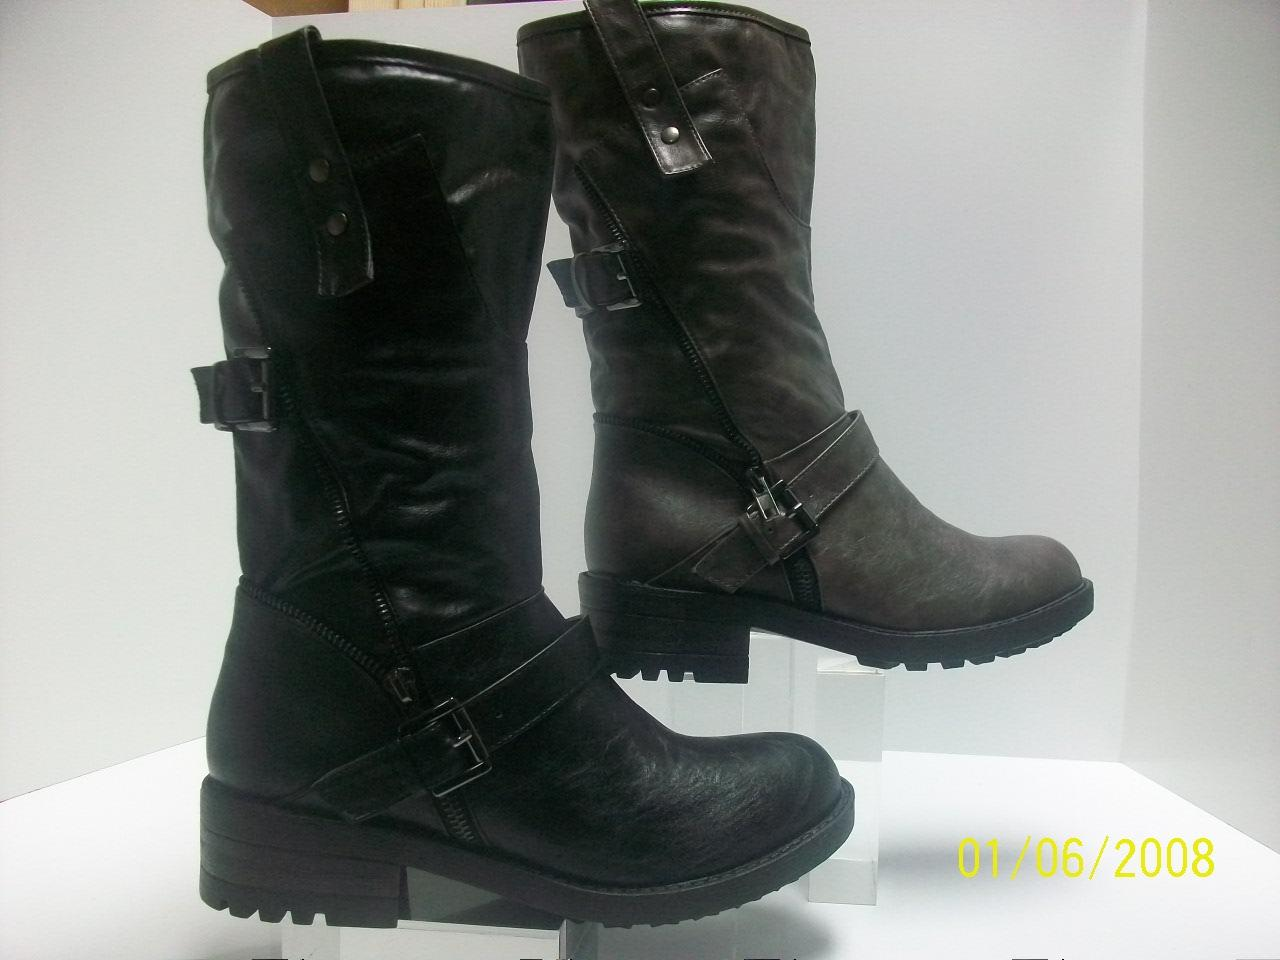 Unique Find This Pin And More On Boots Not For Walking Mustang Womens Biker Boots In Dark Grey I Afore These Boots! Official UK Stockist Of Genuine Mustang Biker Boots  Free UK Shipping Womens Boots In &quotWomens Shoes,